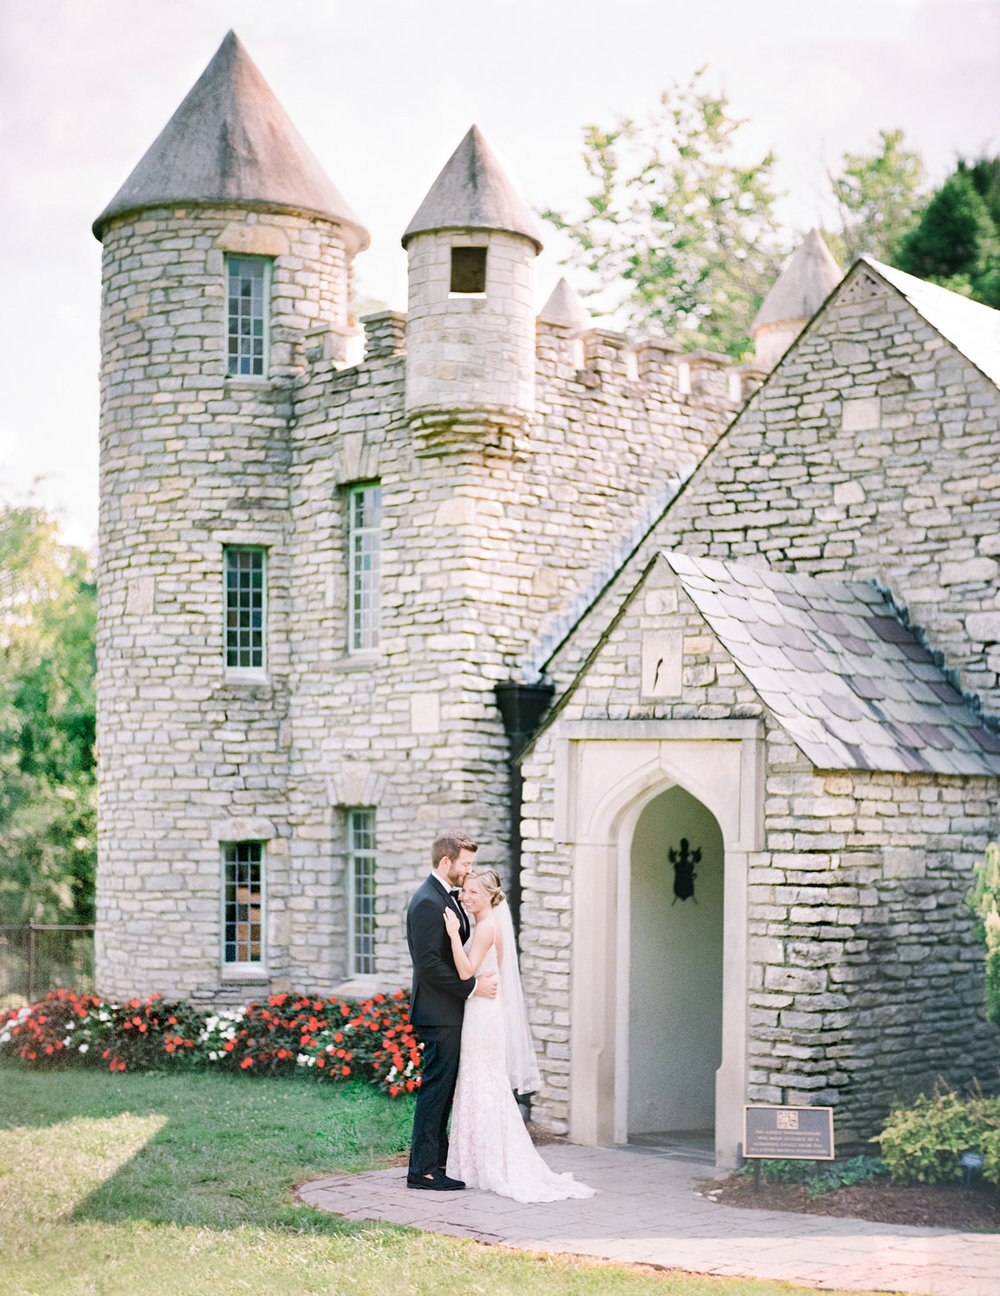 Image of bride and groom embracing in front of castle. Taken using Pentax 67 and  Schneider Cinelux Ultra MC 120mm f/2